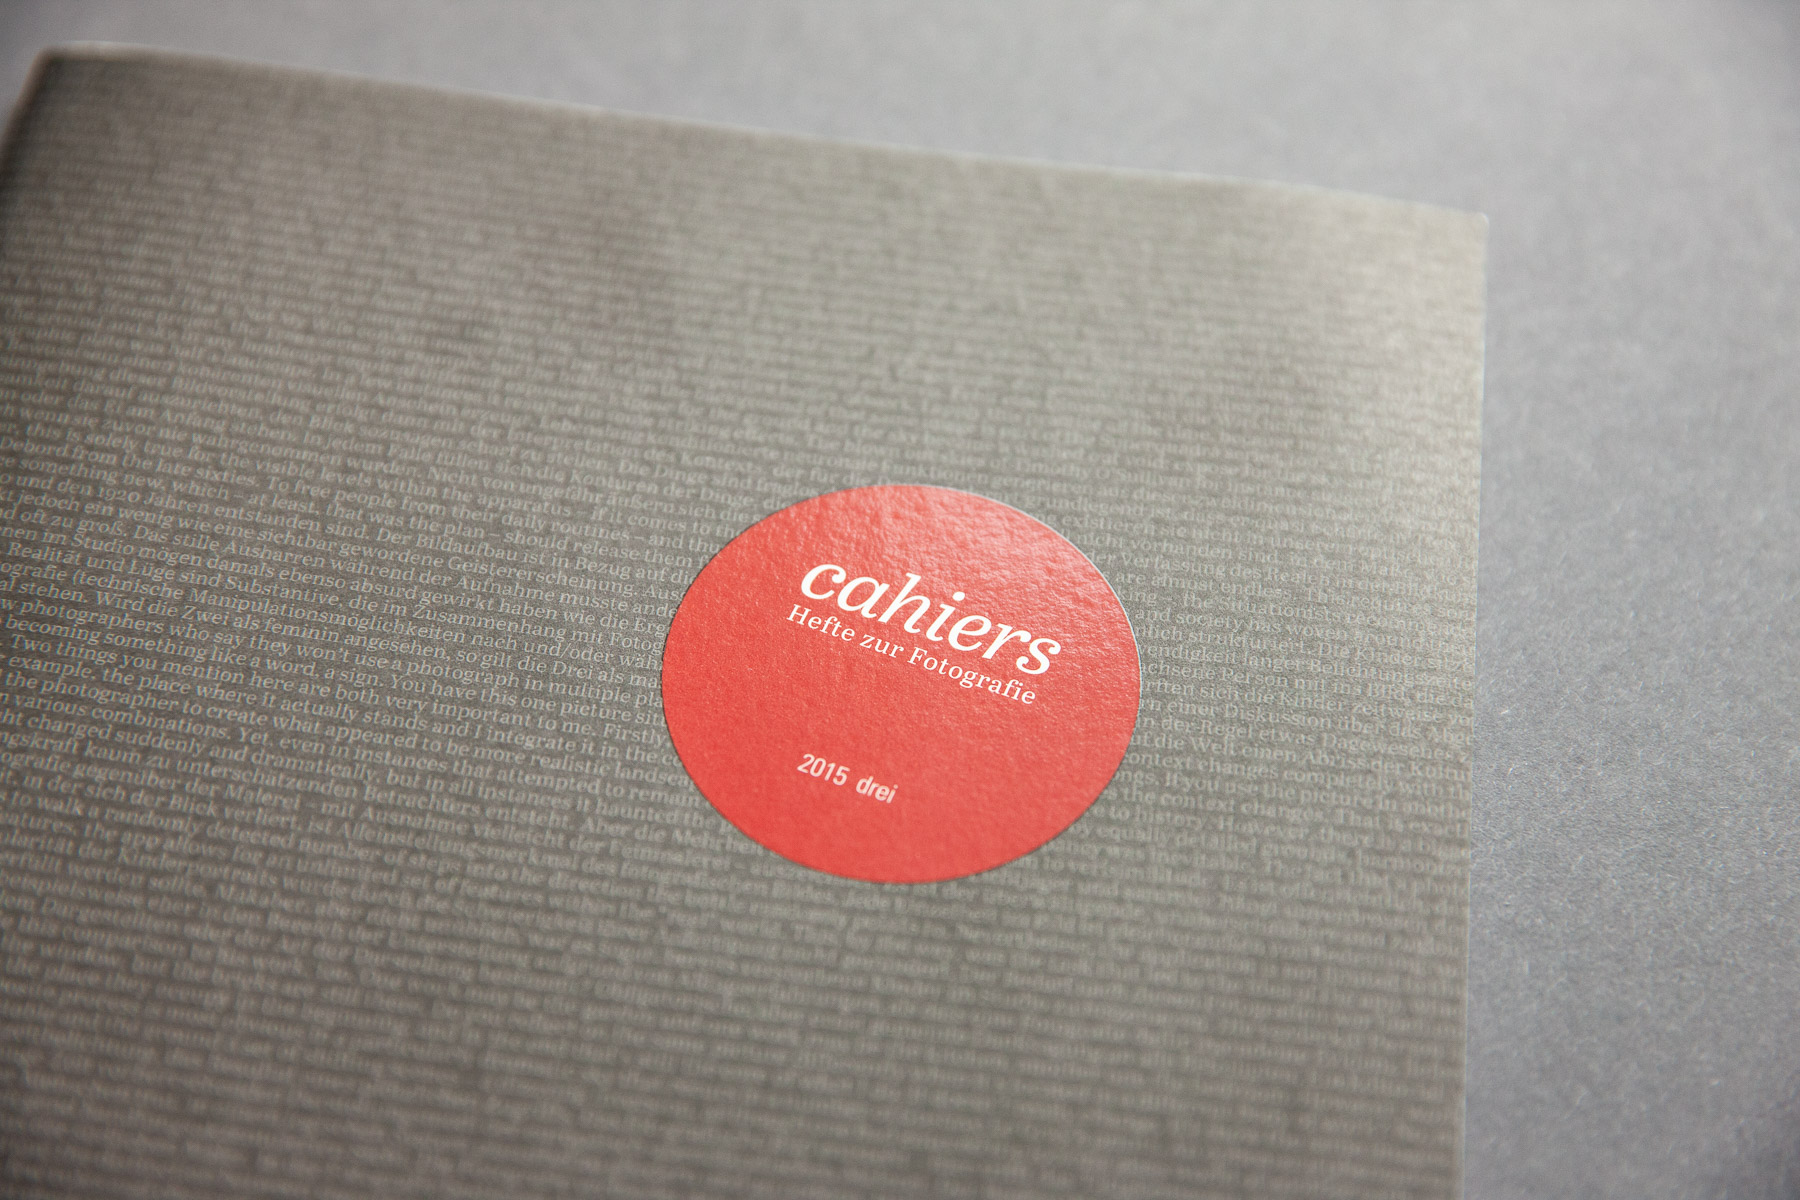 Cahiers #3 Cover